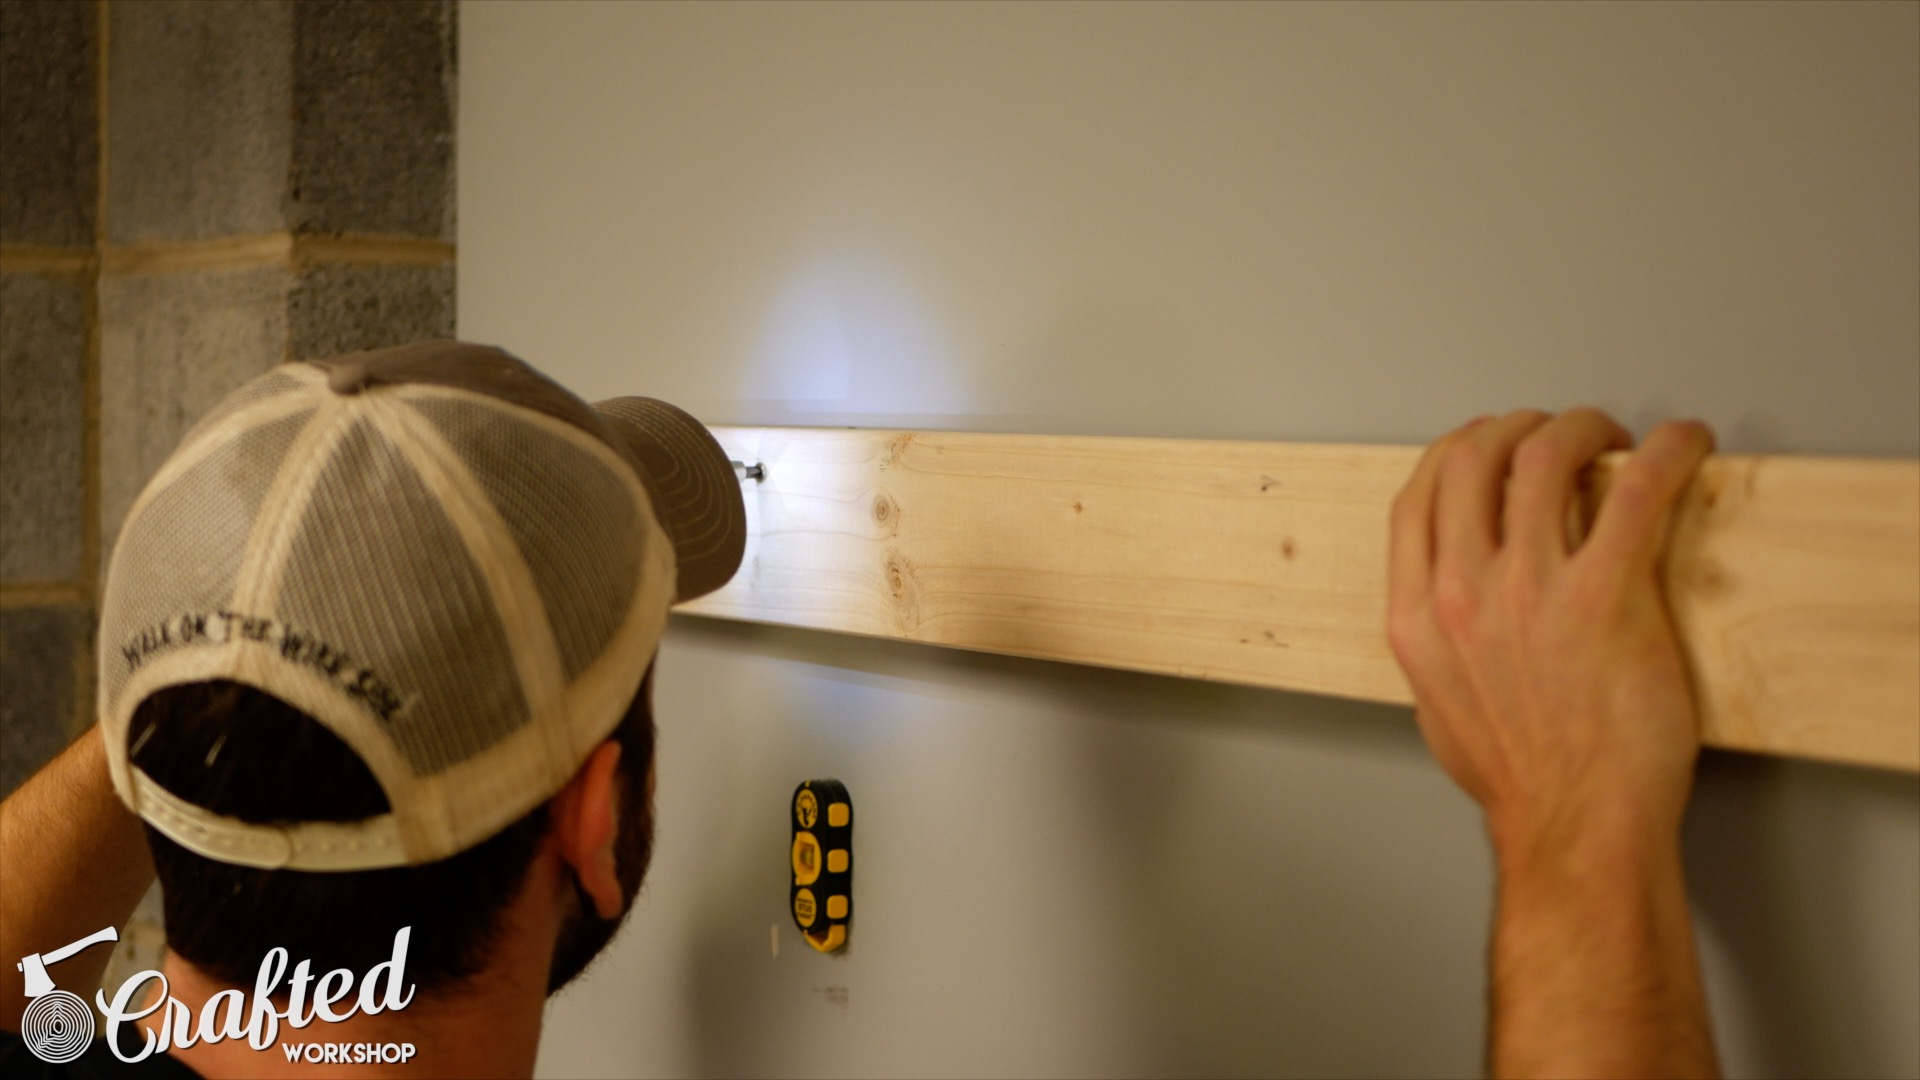 diy bike rack attaching 2x4